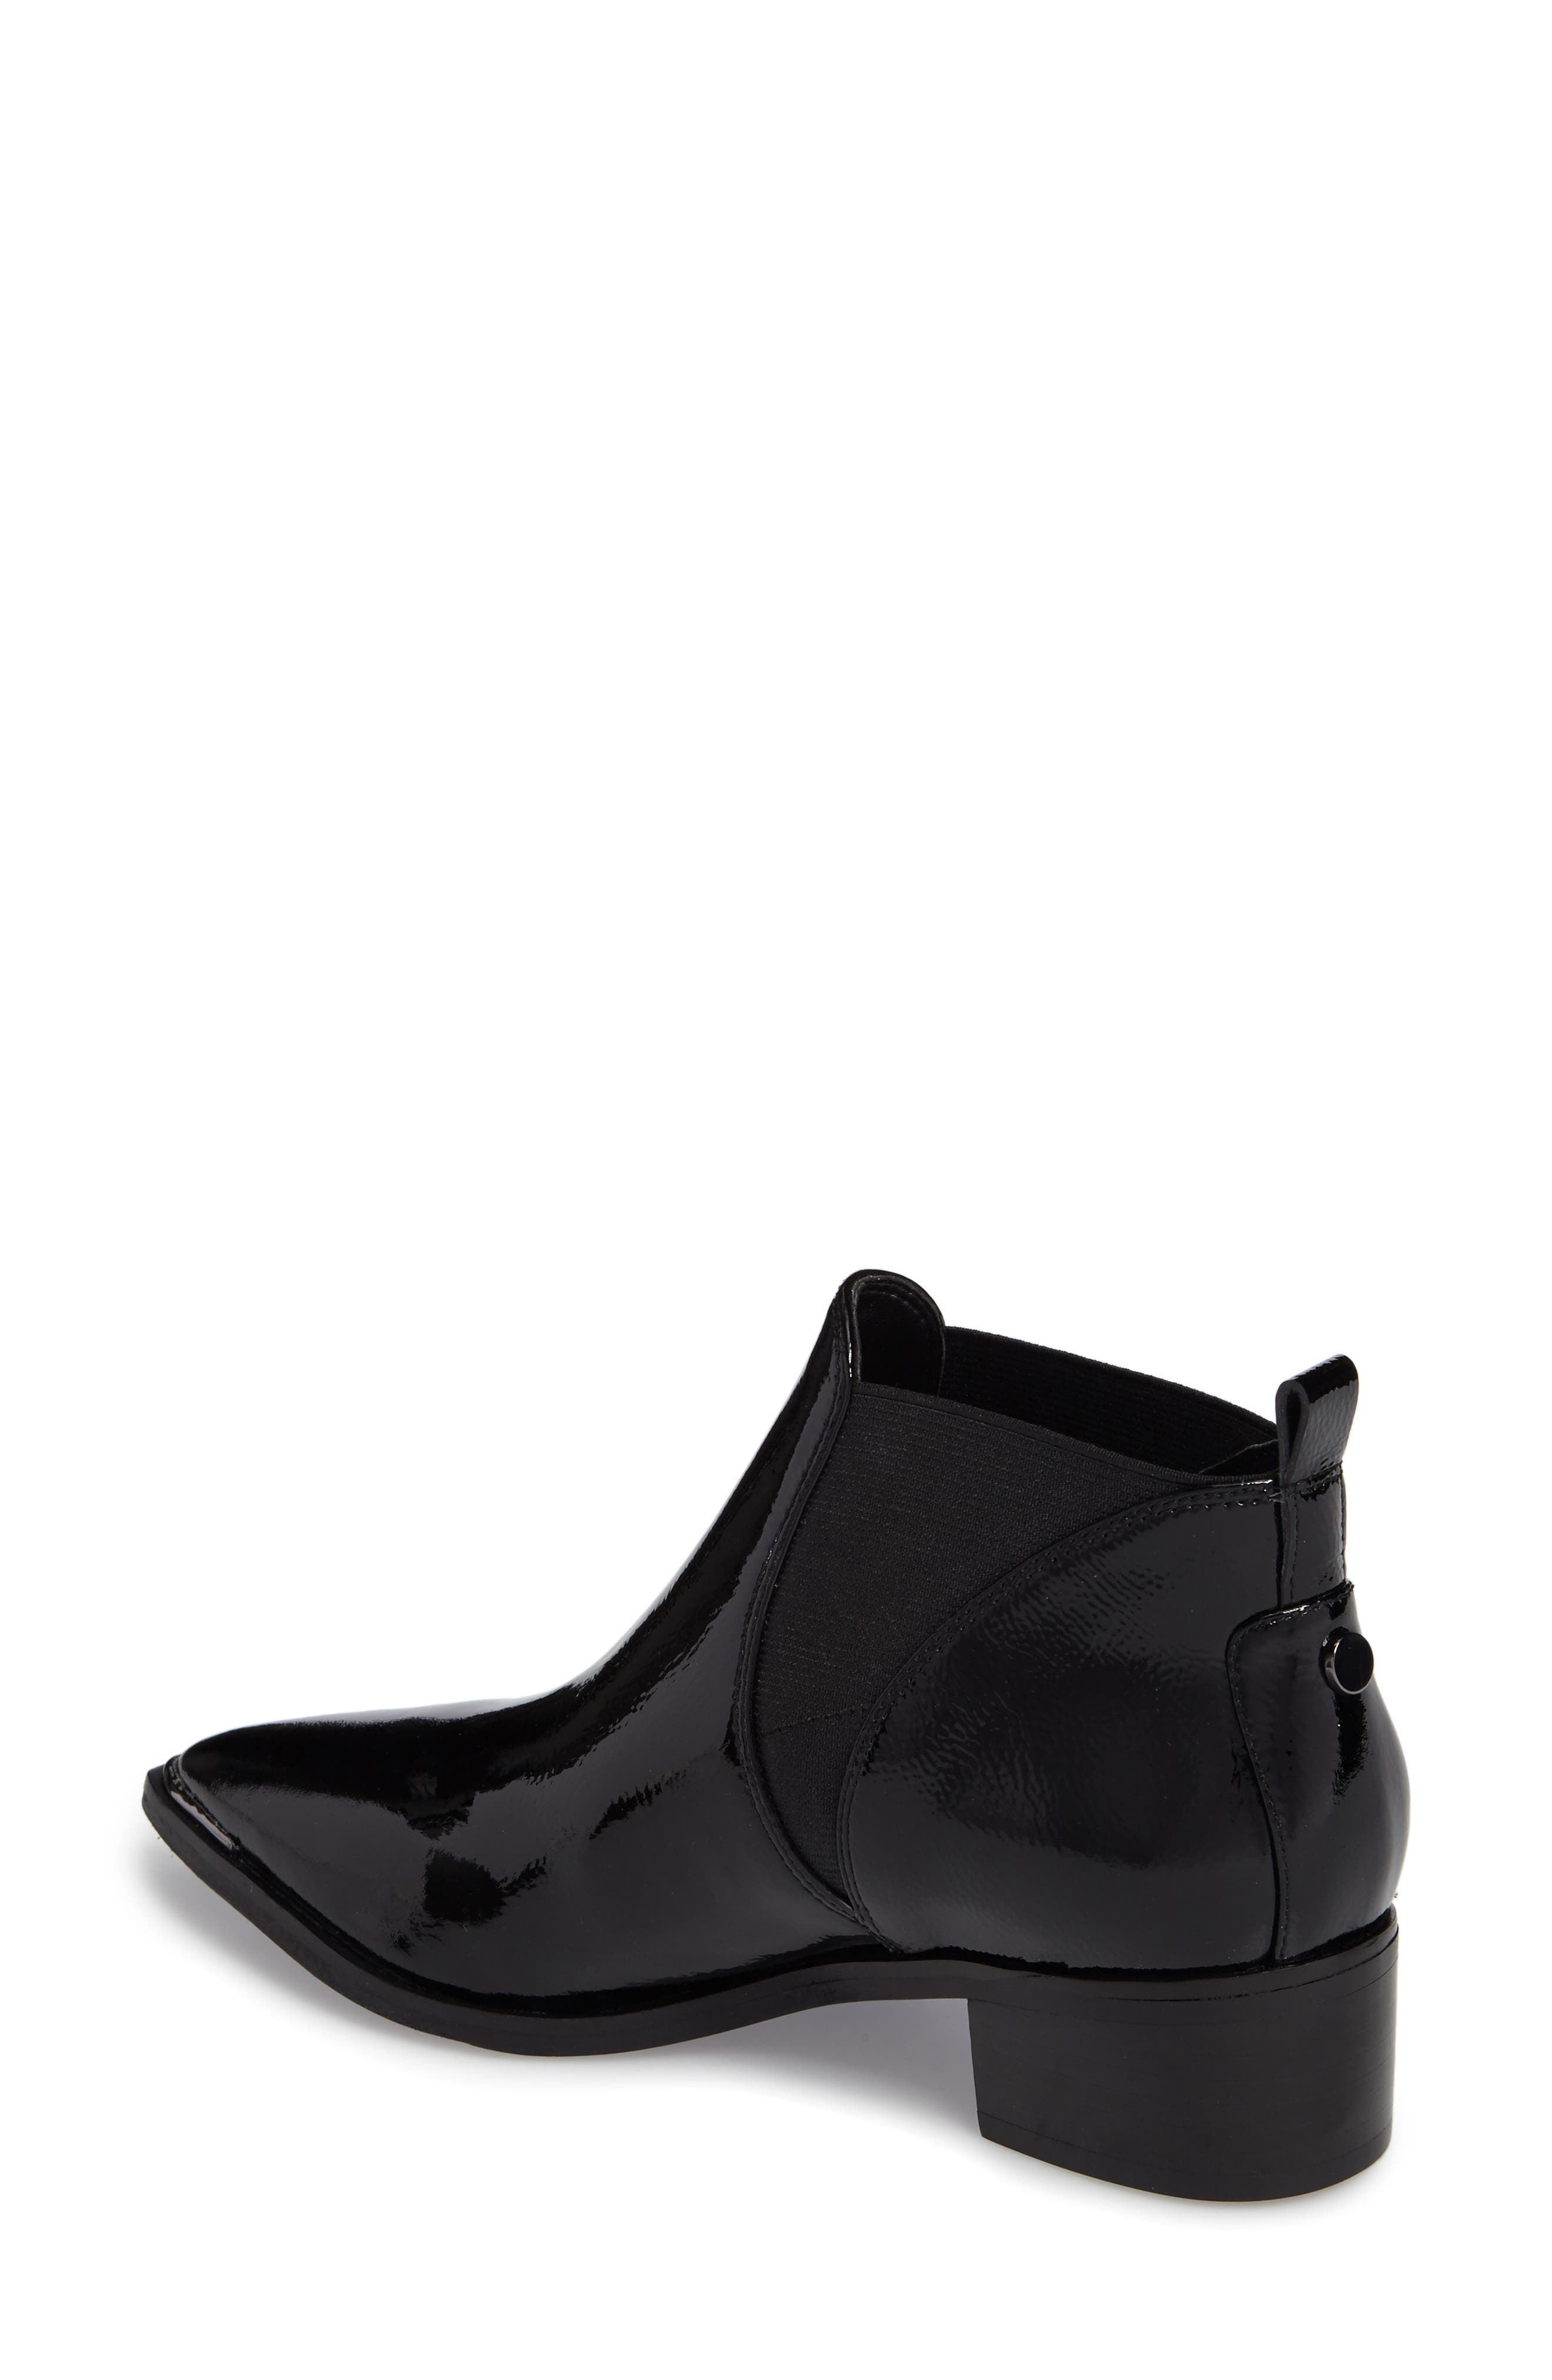 Yellin Pointy Toe Chelsea Boot,                             Alternate thumbnail 2, color,                             Black Patent Leather